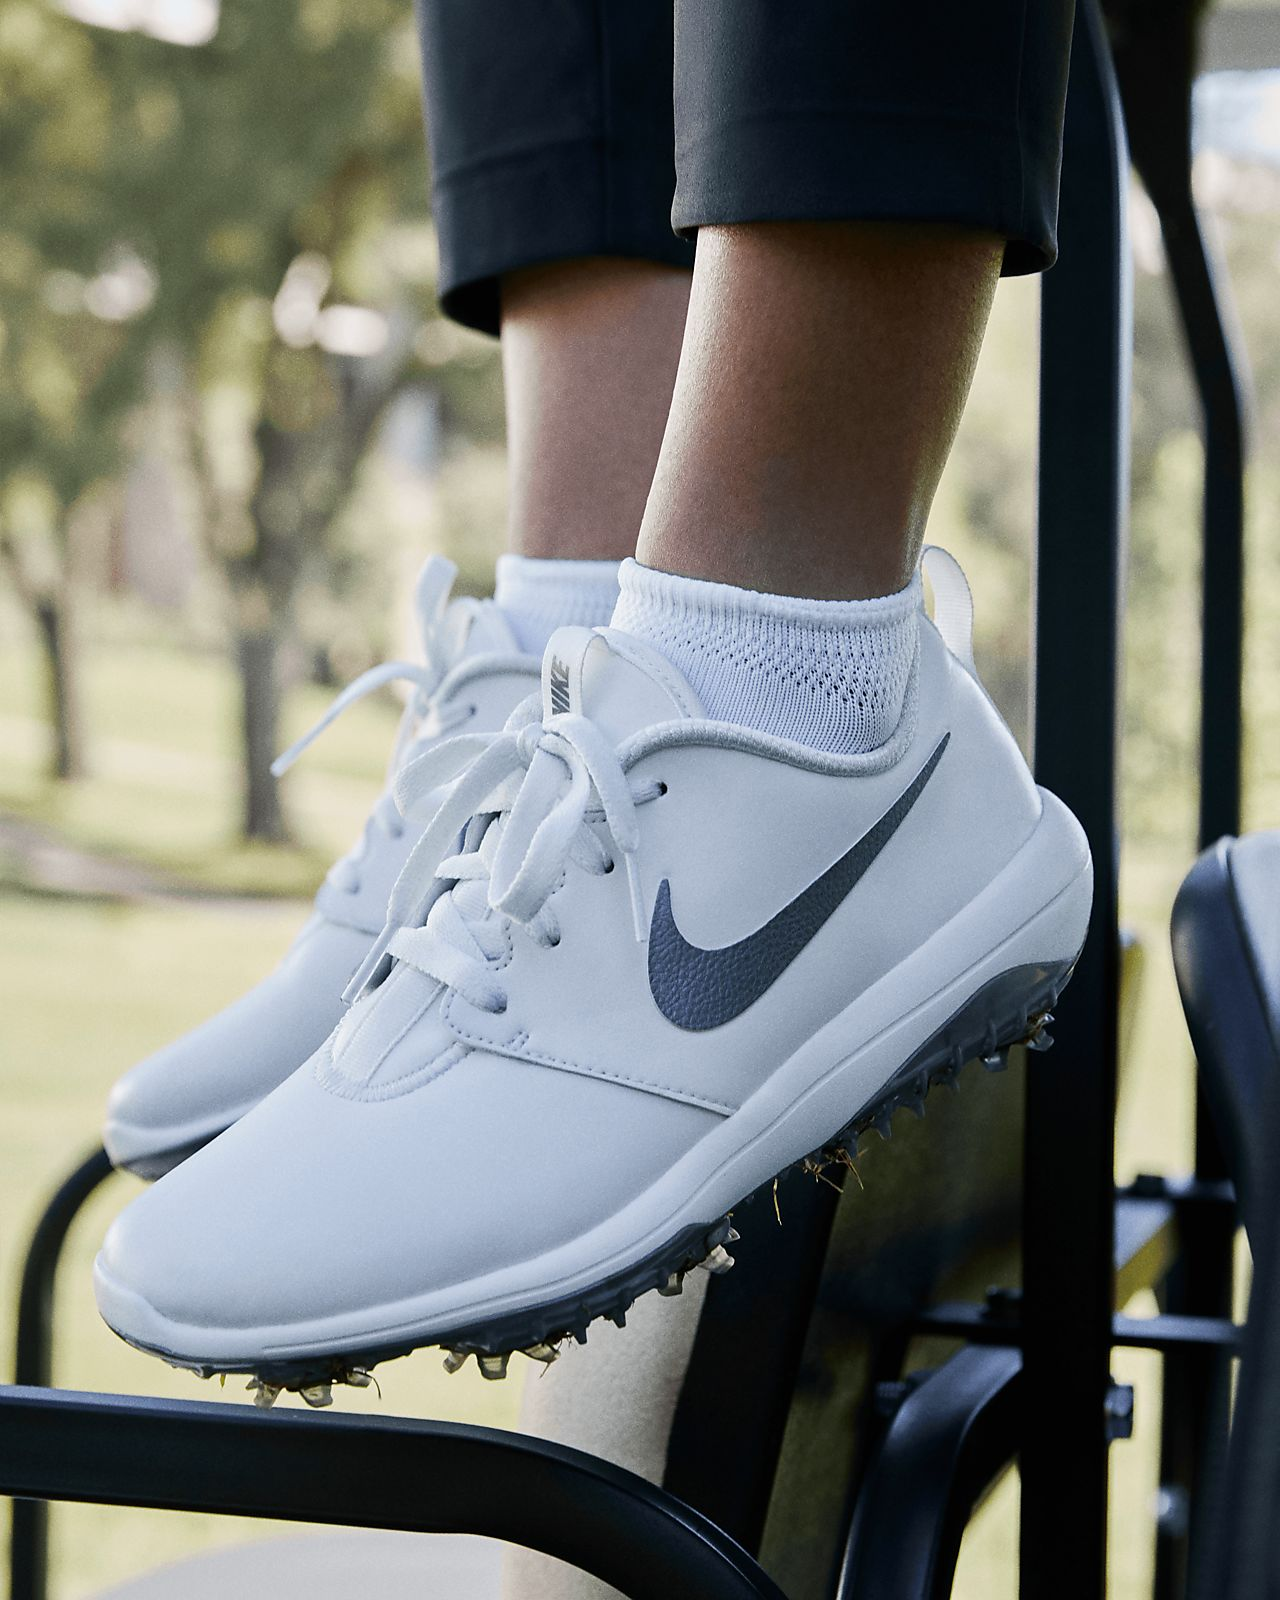 Anterior armario Énfasis  nike roshe g tour golf shoes review Shop Clothing & Shoes Online